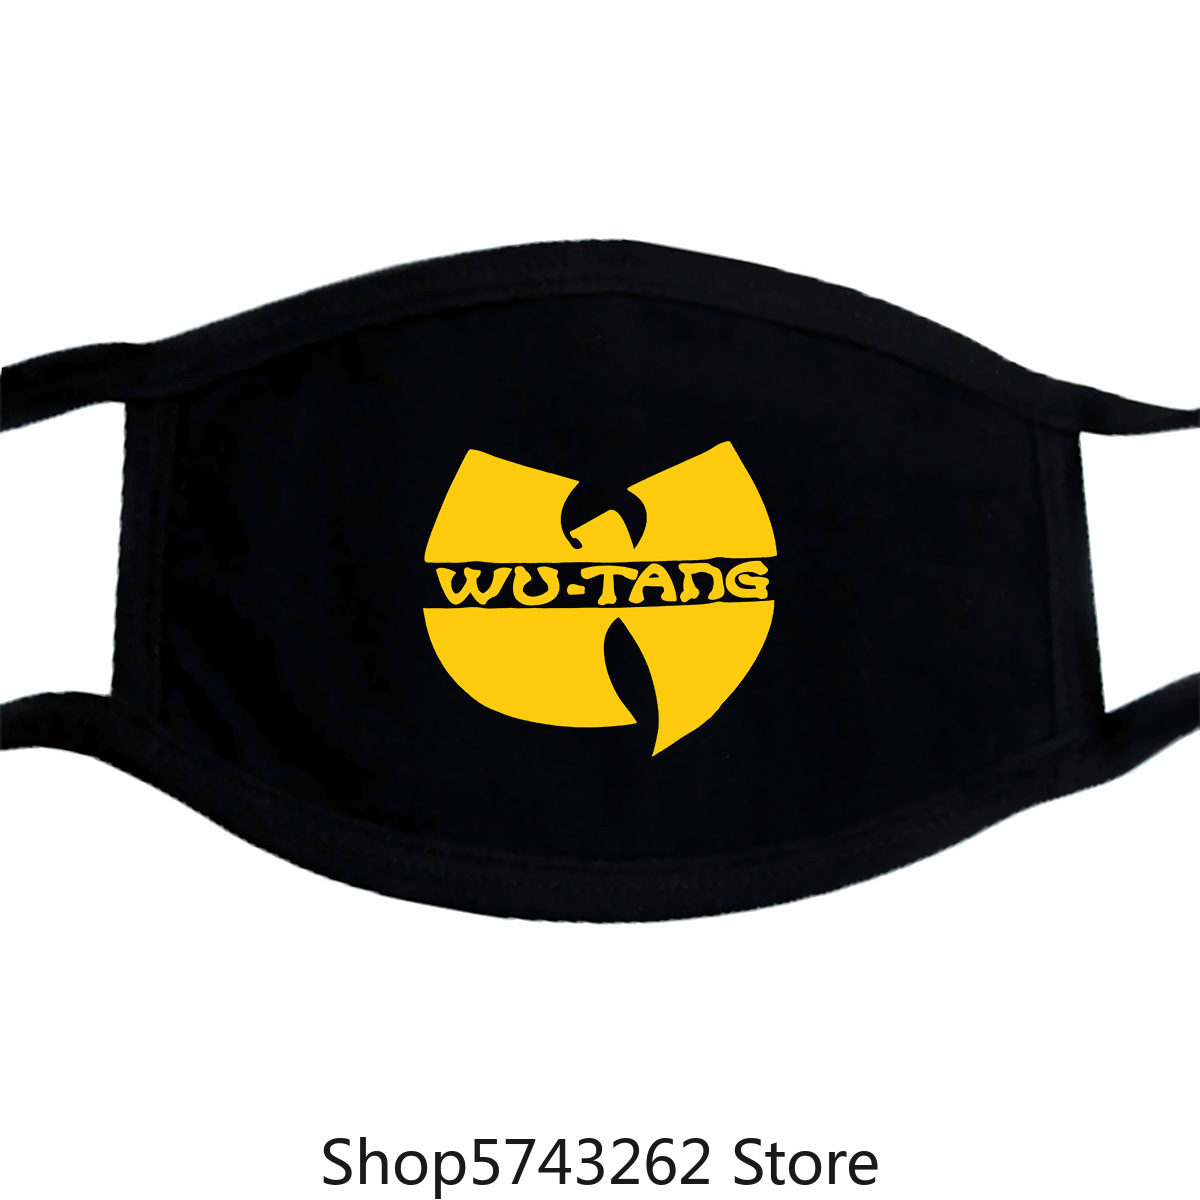 Wu Tang Clan Mask Gza Rza Odb Hip Hop Rap Tee Mens Black New Washable Reusable Mask